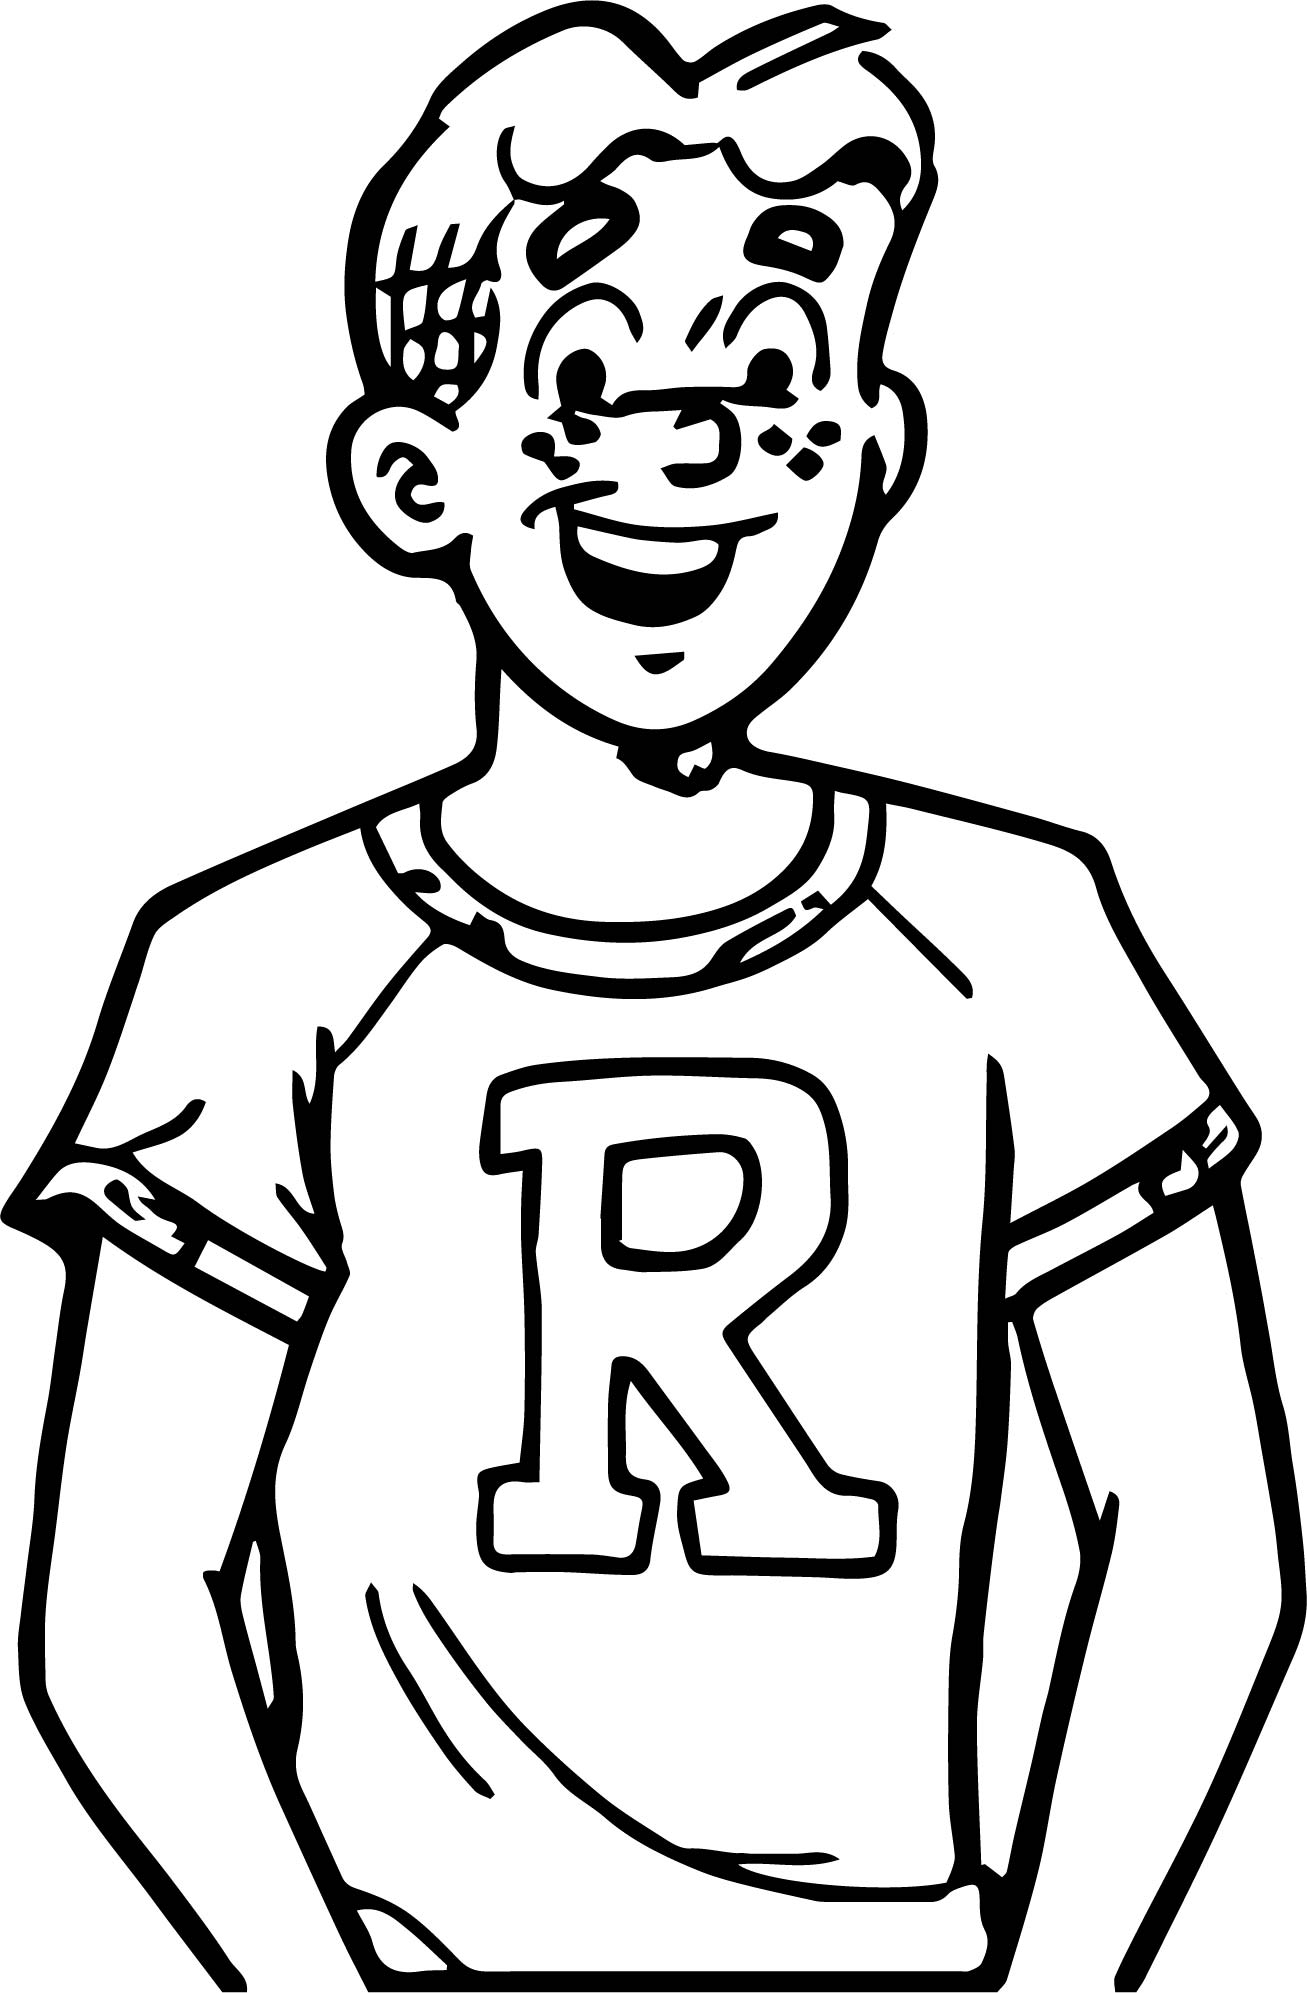 archie coloring pages - photo#22